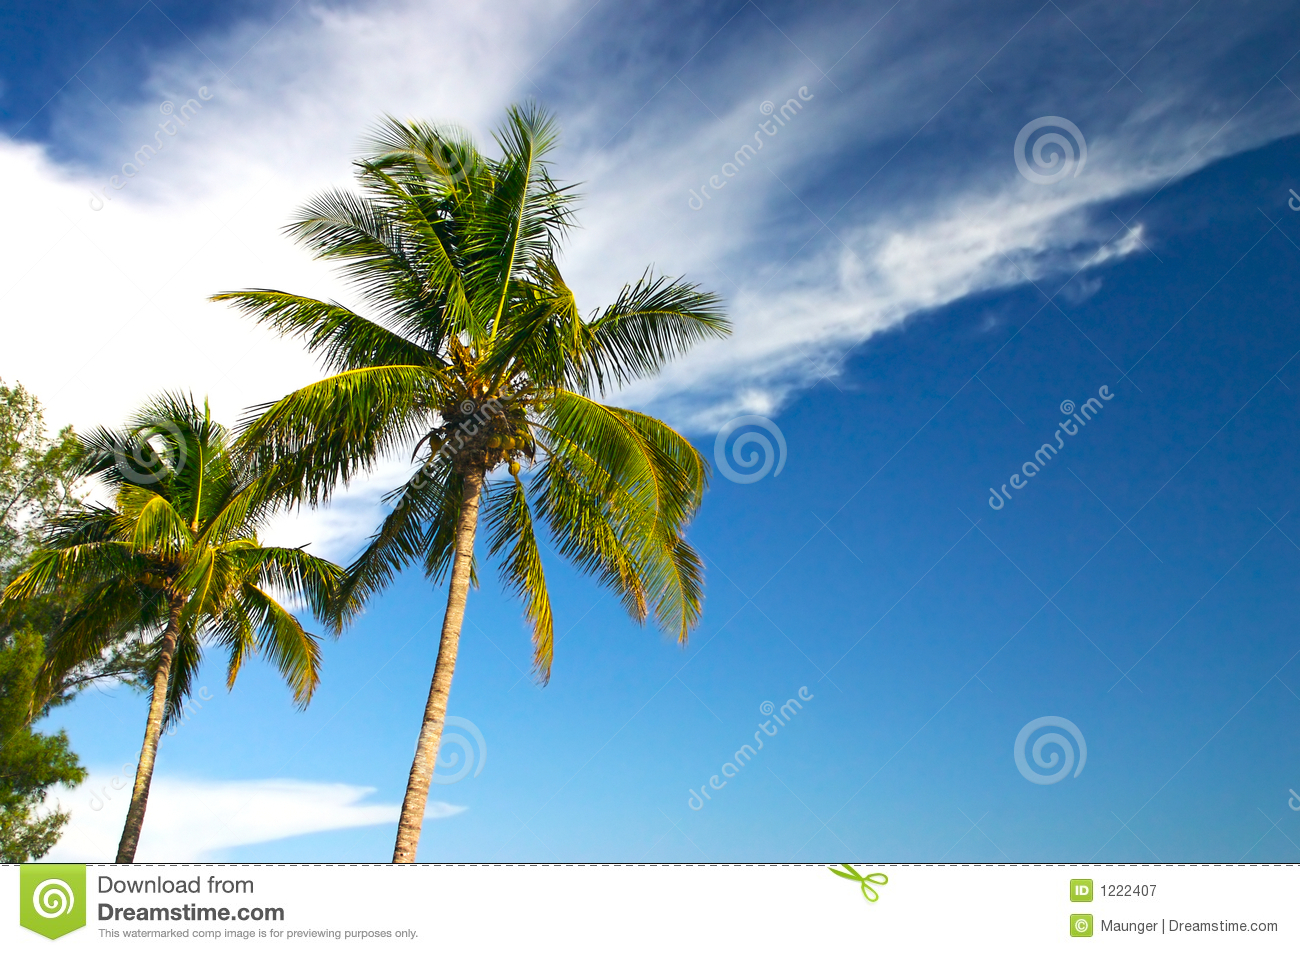 Two Palm trees and a blue sky